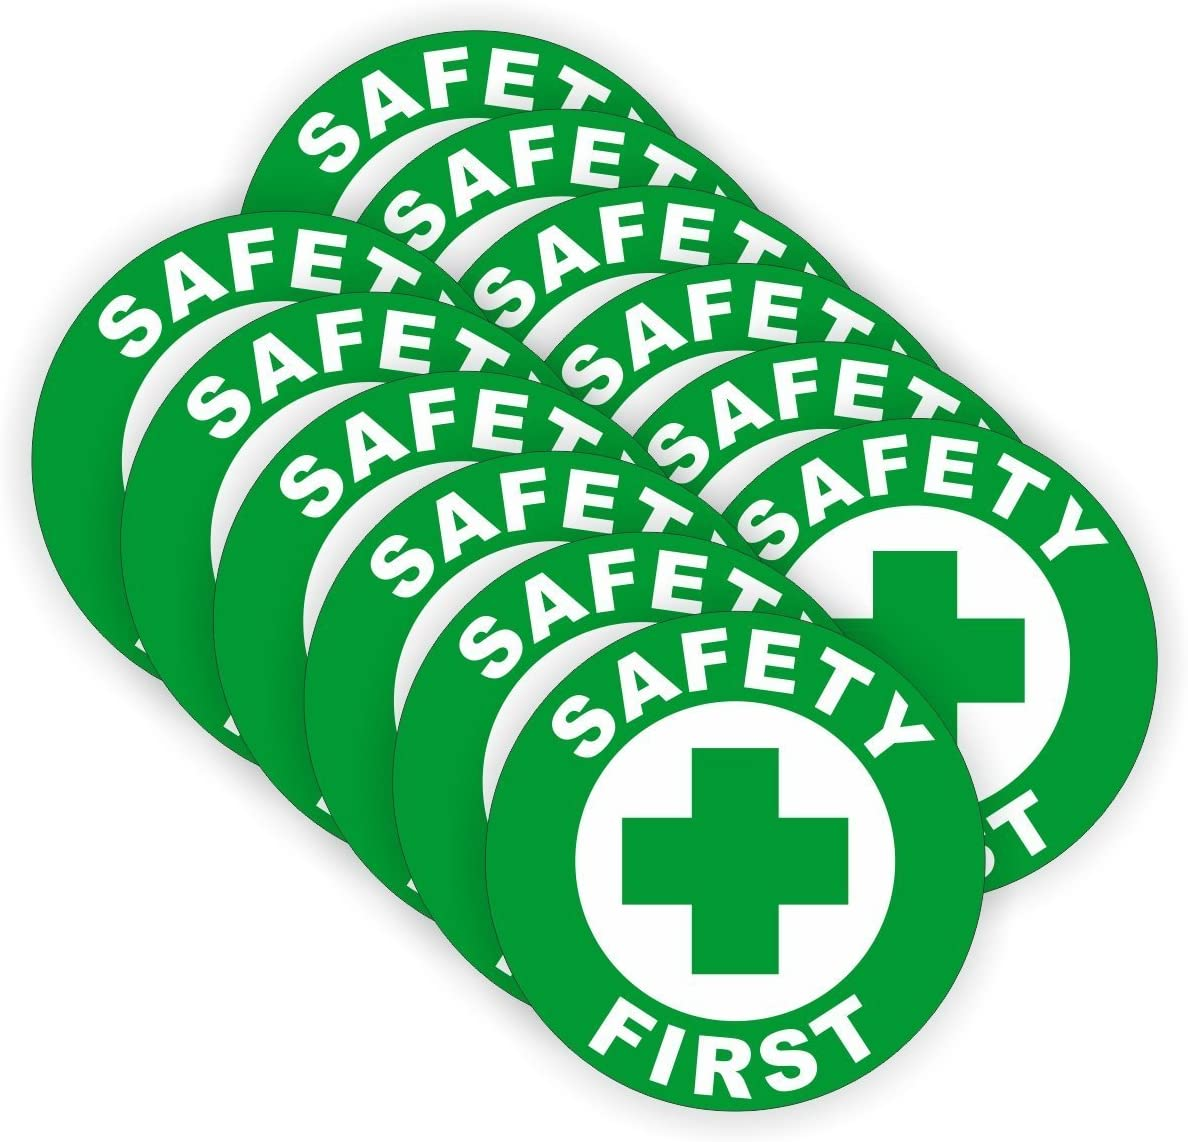 (12 PACK) Safety First circle by StickerDad - size: 2